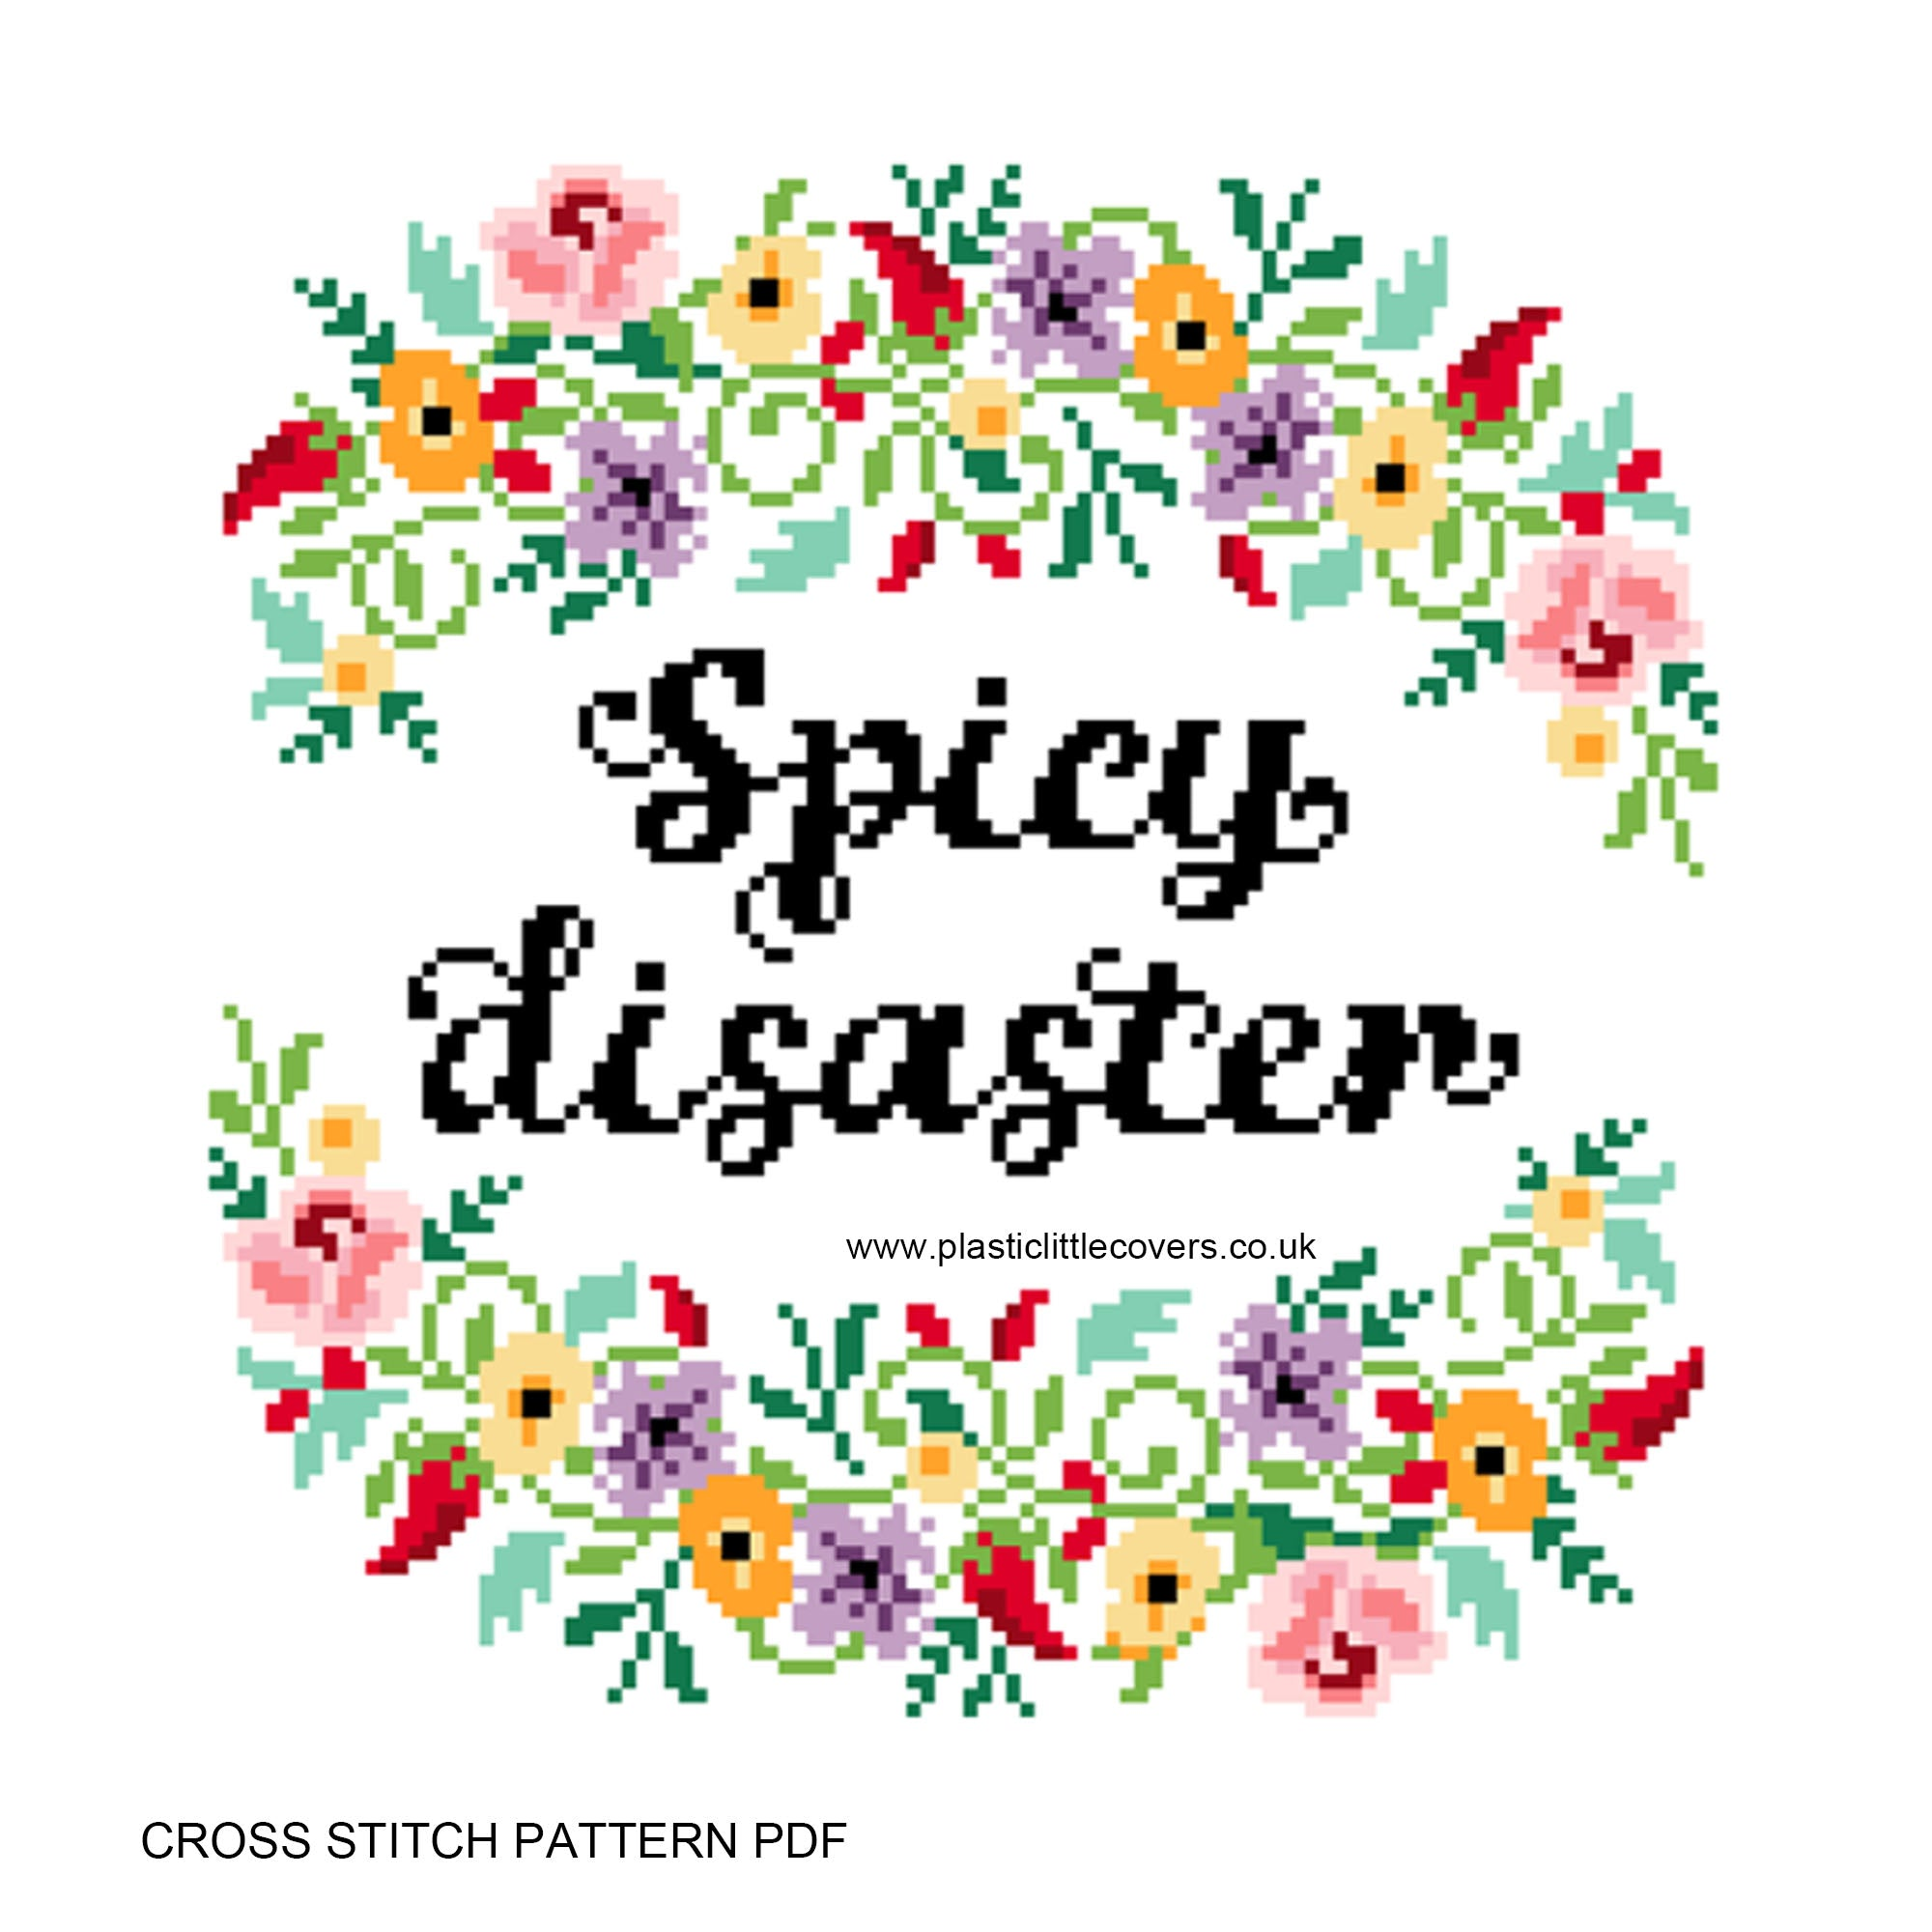 Spicy Disaster - Cross Stitch Pattern PDF.